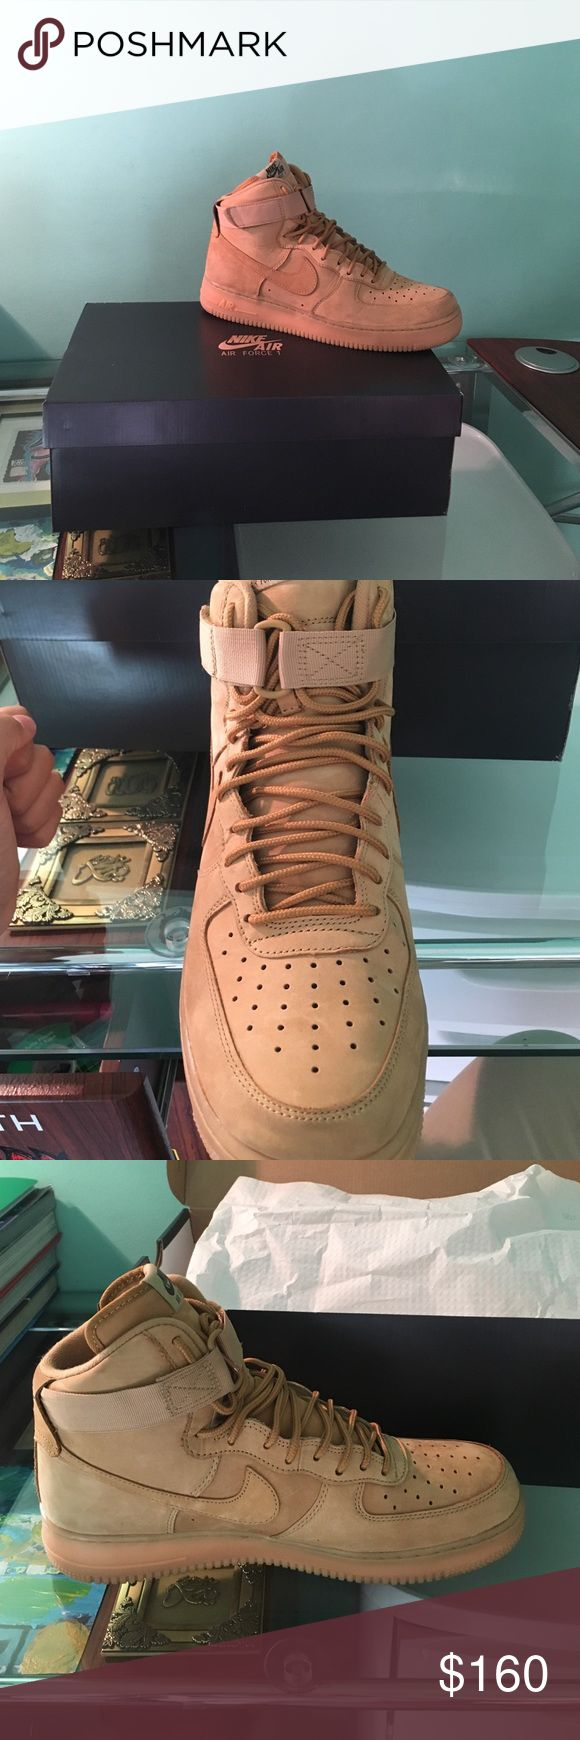 Nike Air Force one flax Brand new, size 10.5, never worn, willing to go lower on PayPal. Nike Shoes Sneakers